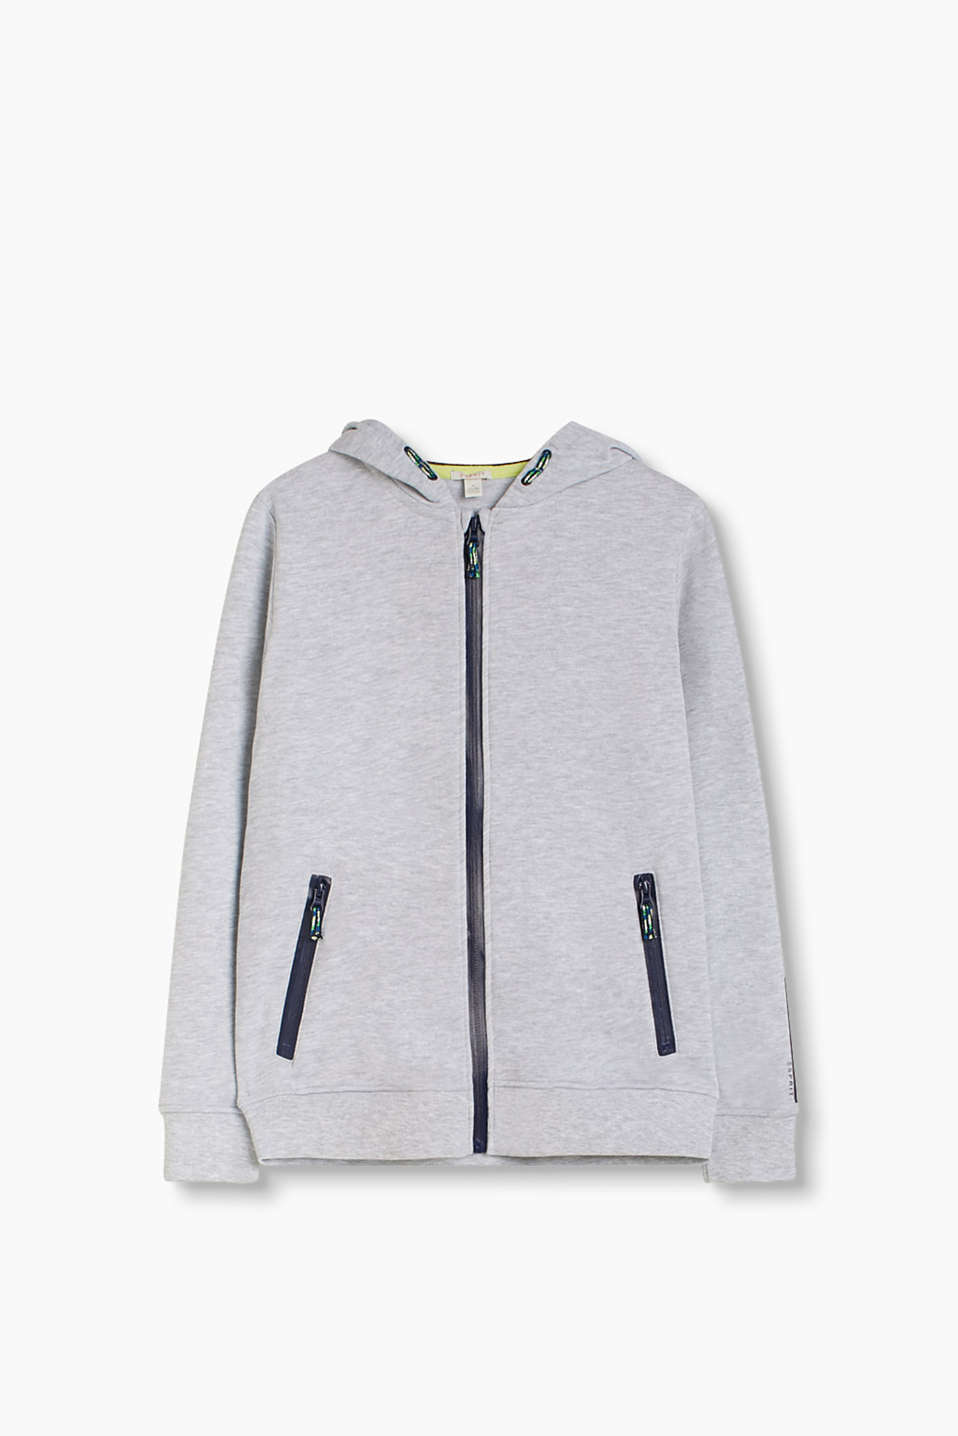 Melange sweatshirt hoodie with contrasting colour, lacquered-effect zips